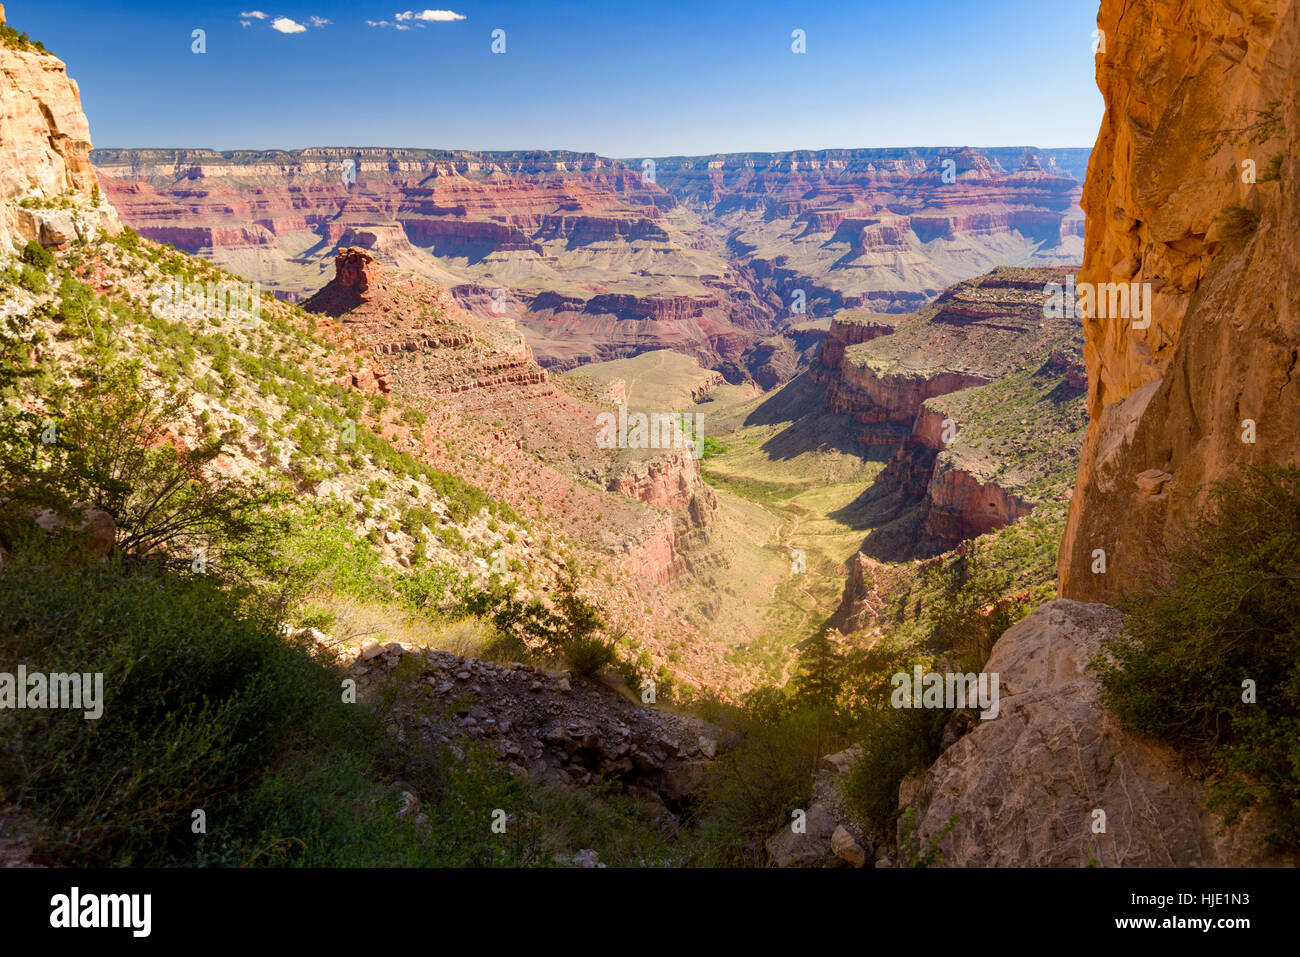 View from Bright Angel Trail, Grand Canyon National Park, Arizona, USA - Stock Image